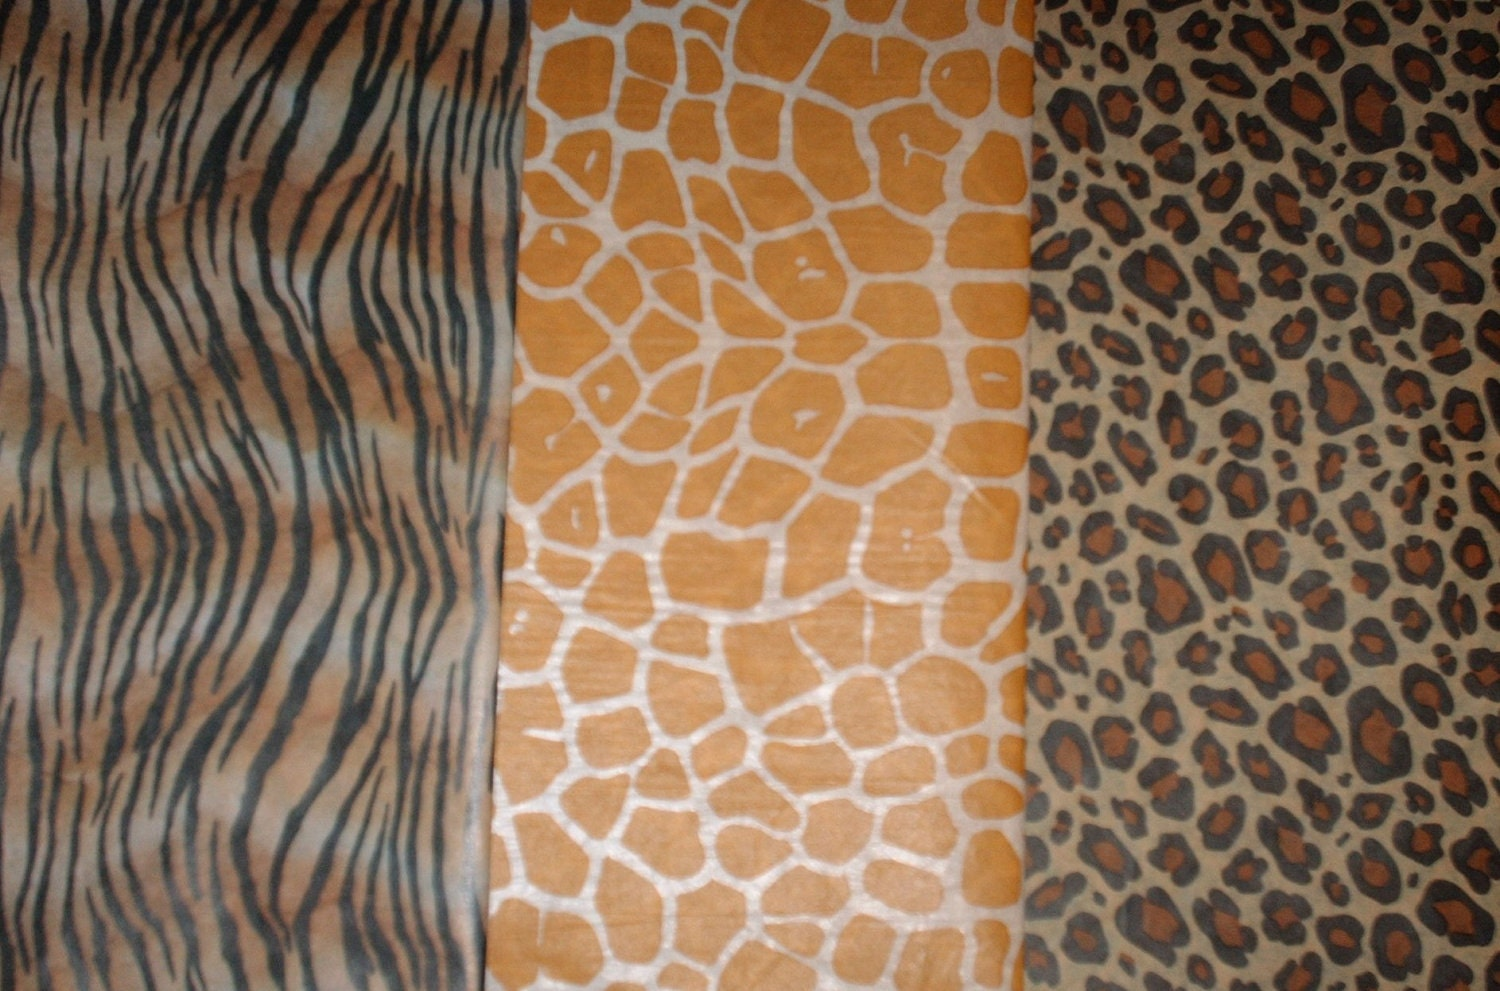 animal print tissue paper Find great deals on ebay for leopard print tissue paper shop with confidence.